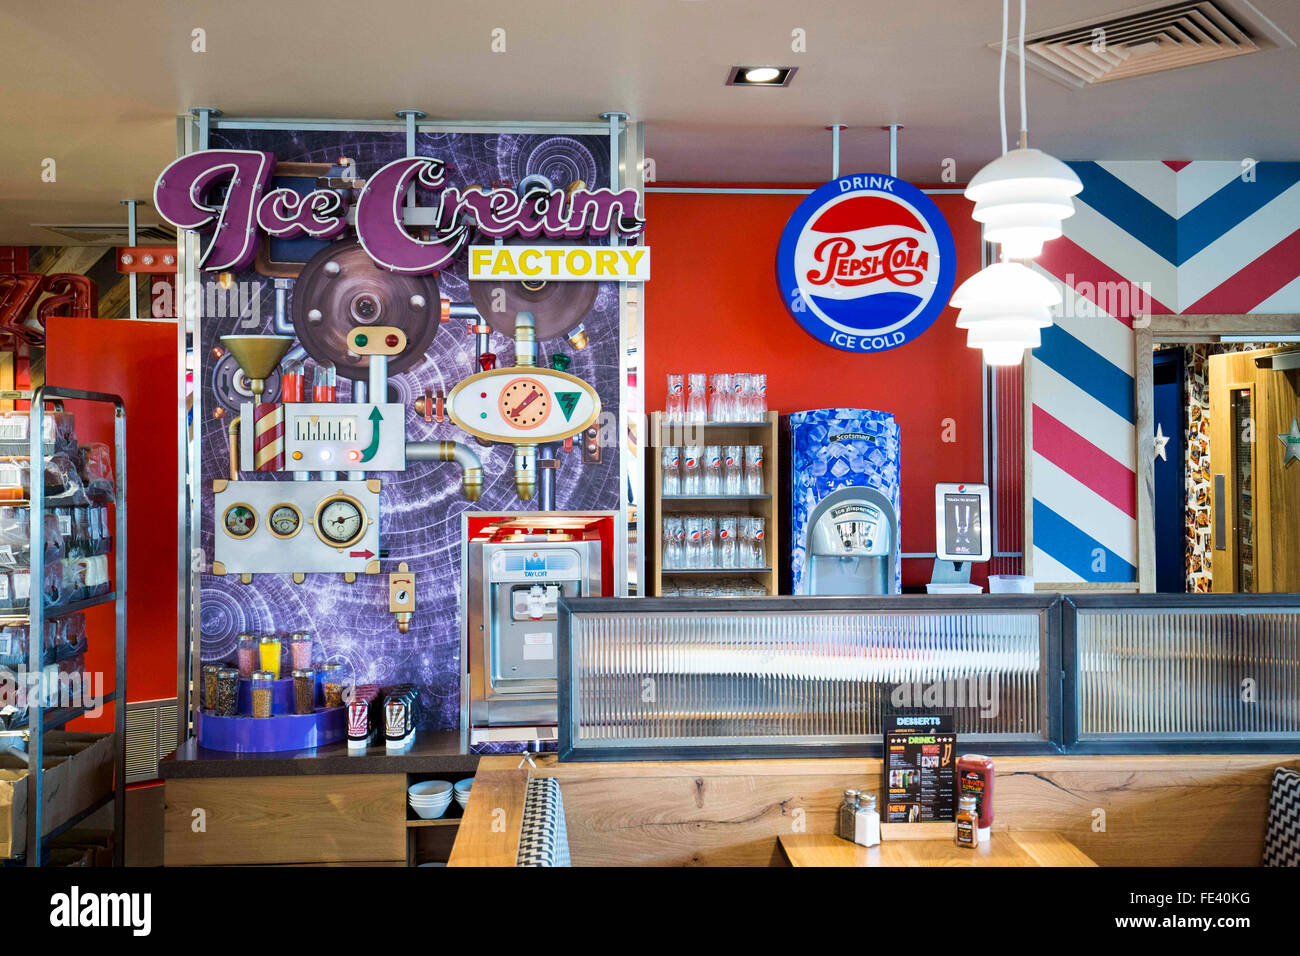 American Style Diner Display In A Pizza Hut Restaurant Stock